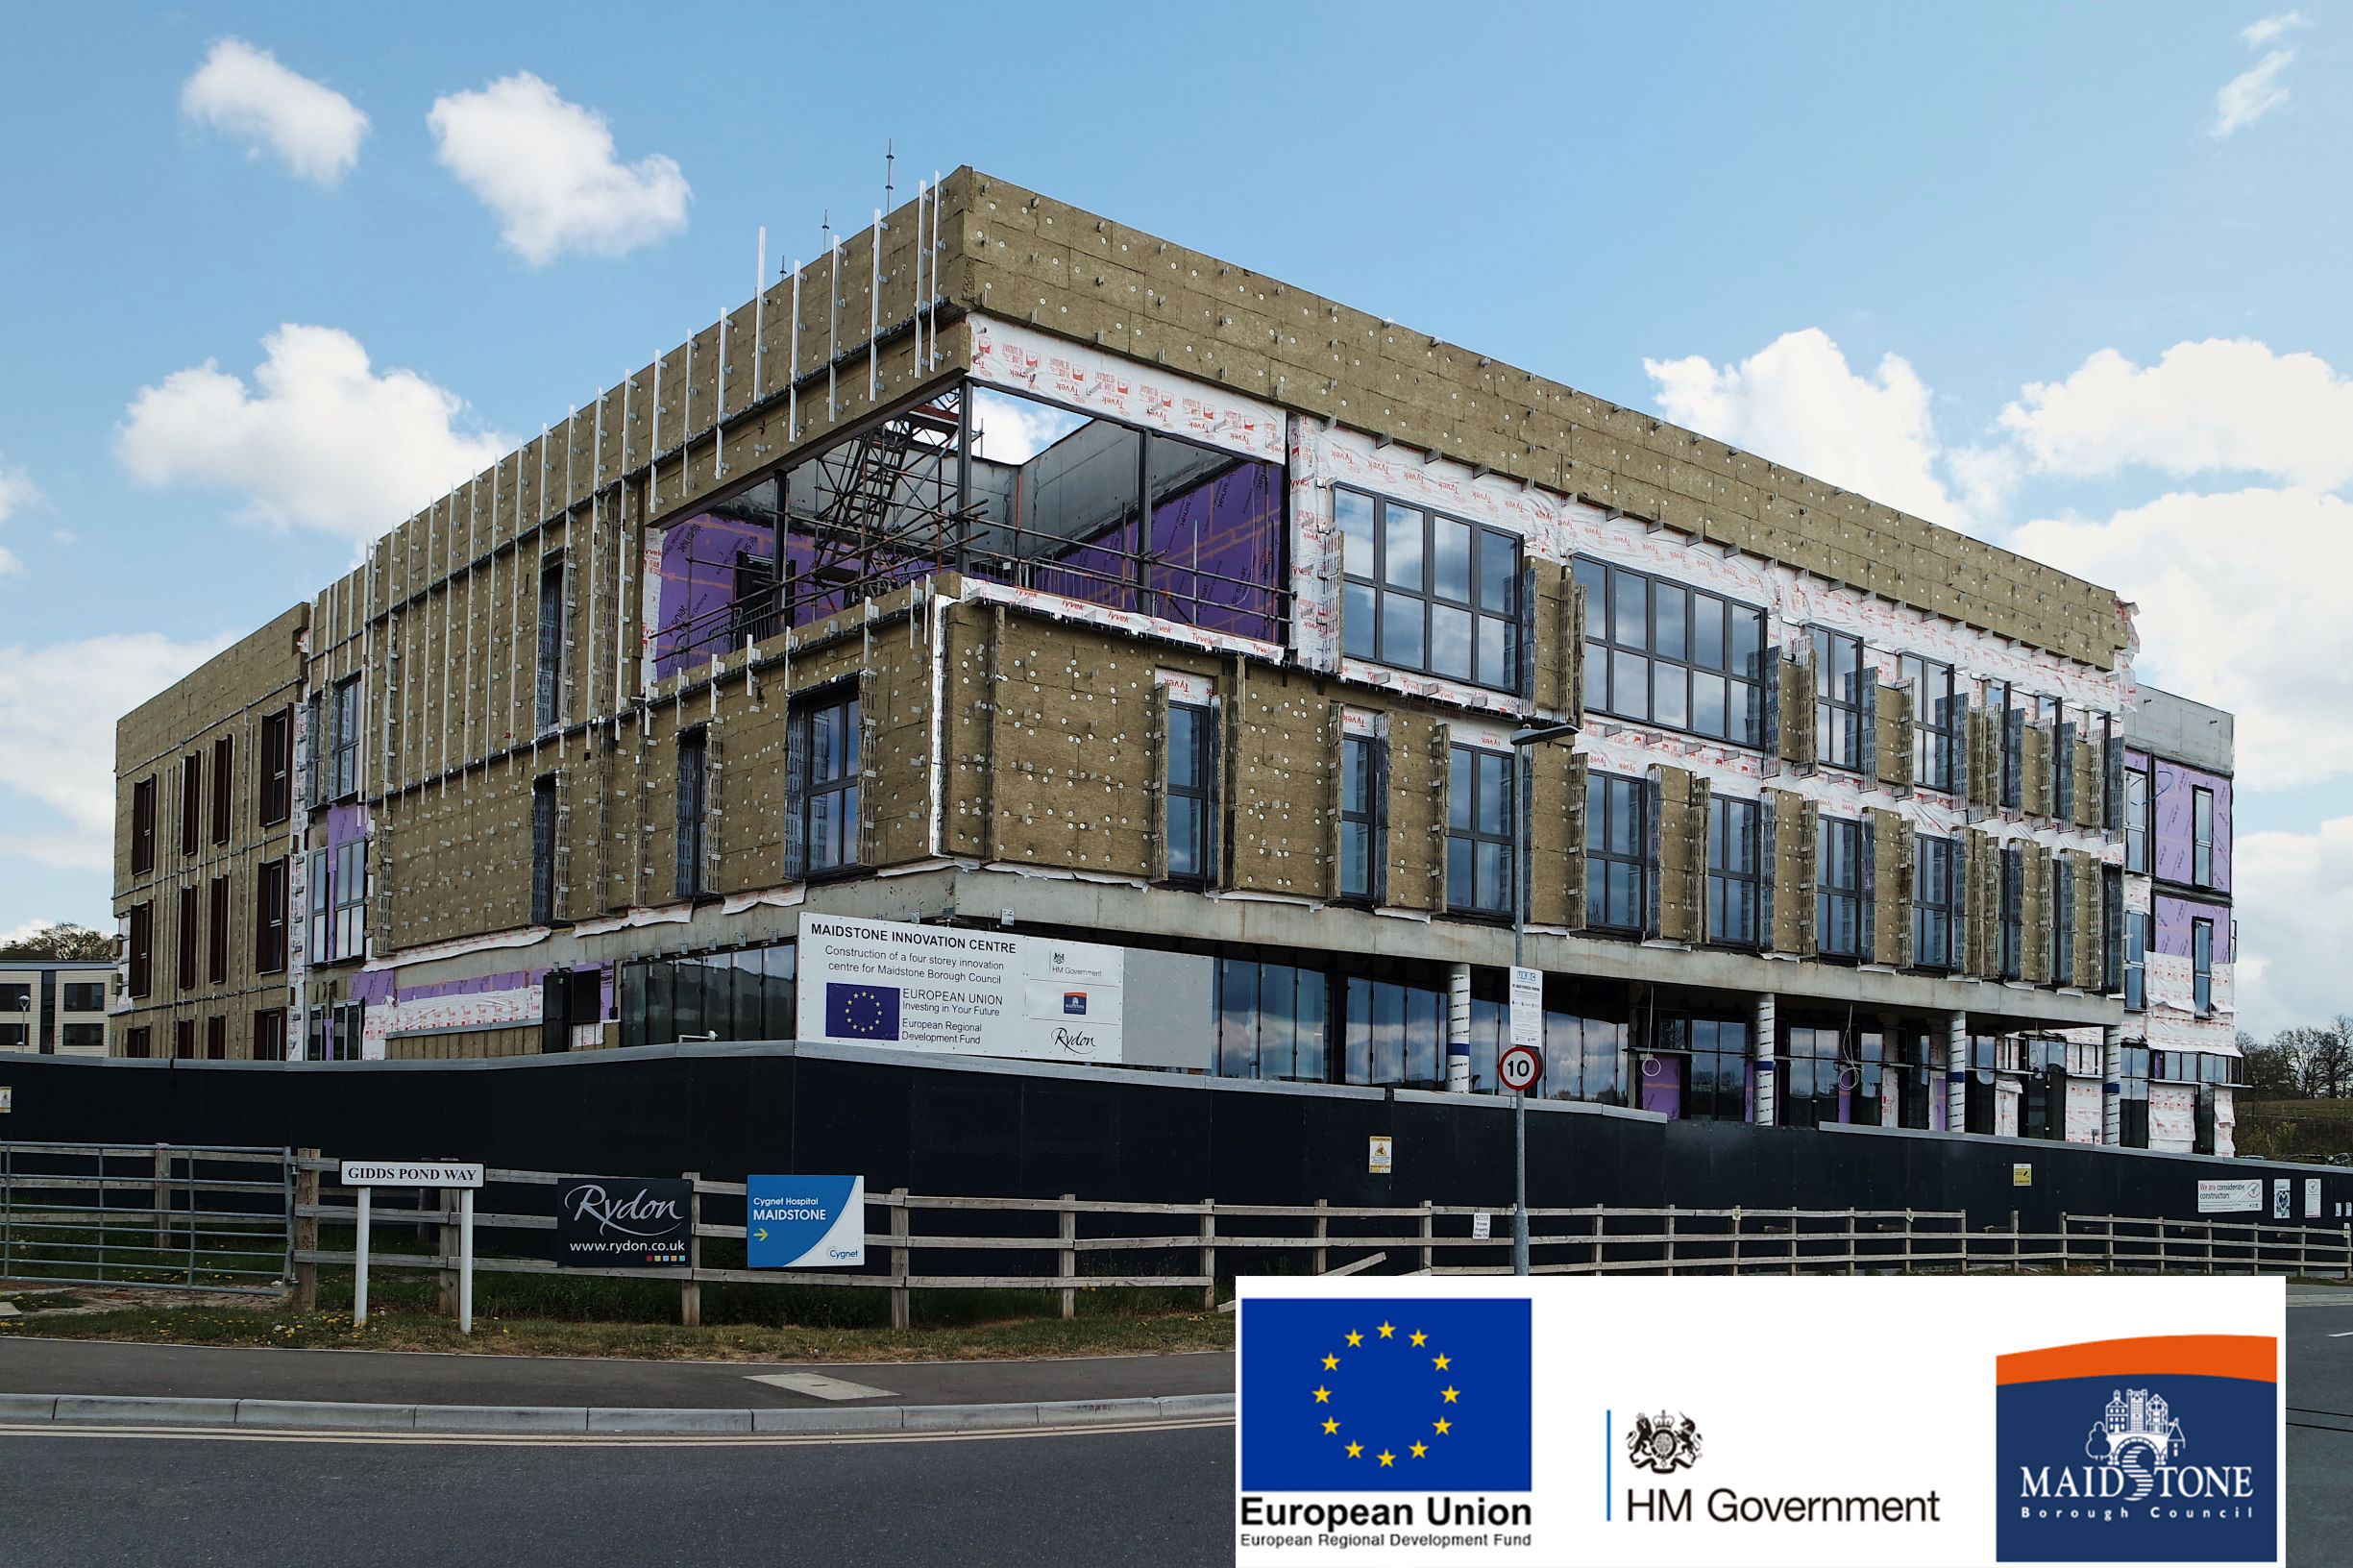 Maidstone Innovation Centre to be first in world to use revolutionary virtual receptionist tech